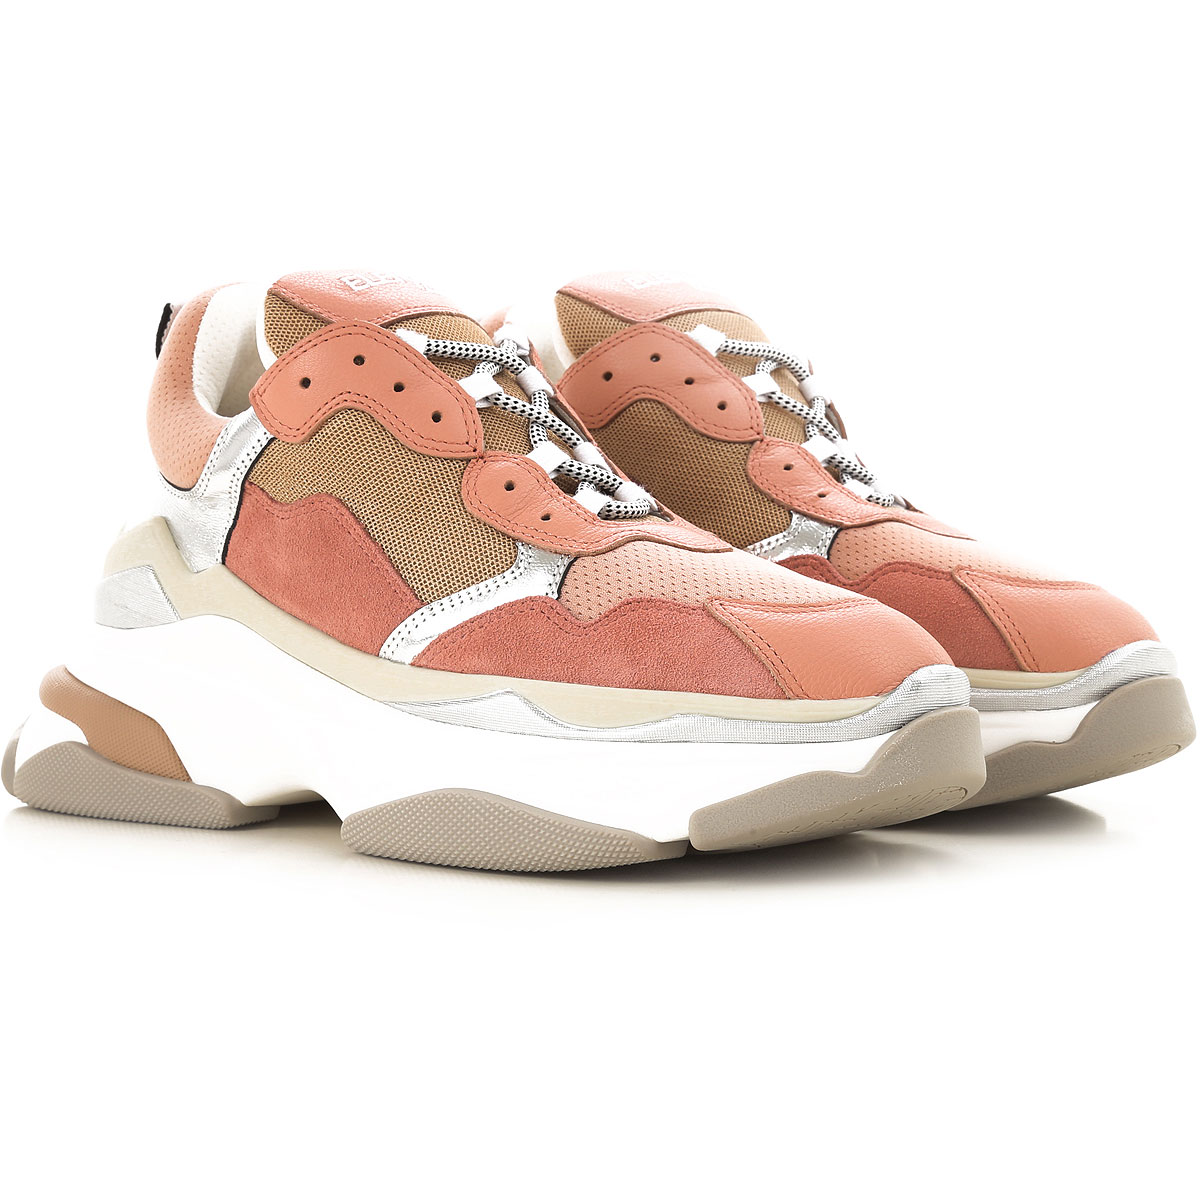 Image of Elena Iachi Sneakers for Women, Pink, Fabric, 2017, 10 6 7 8 9